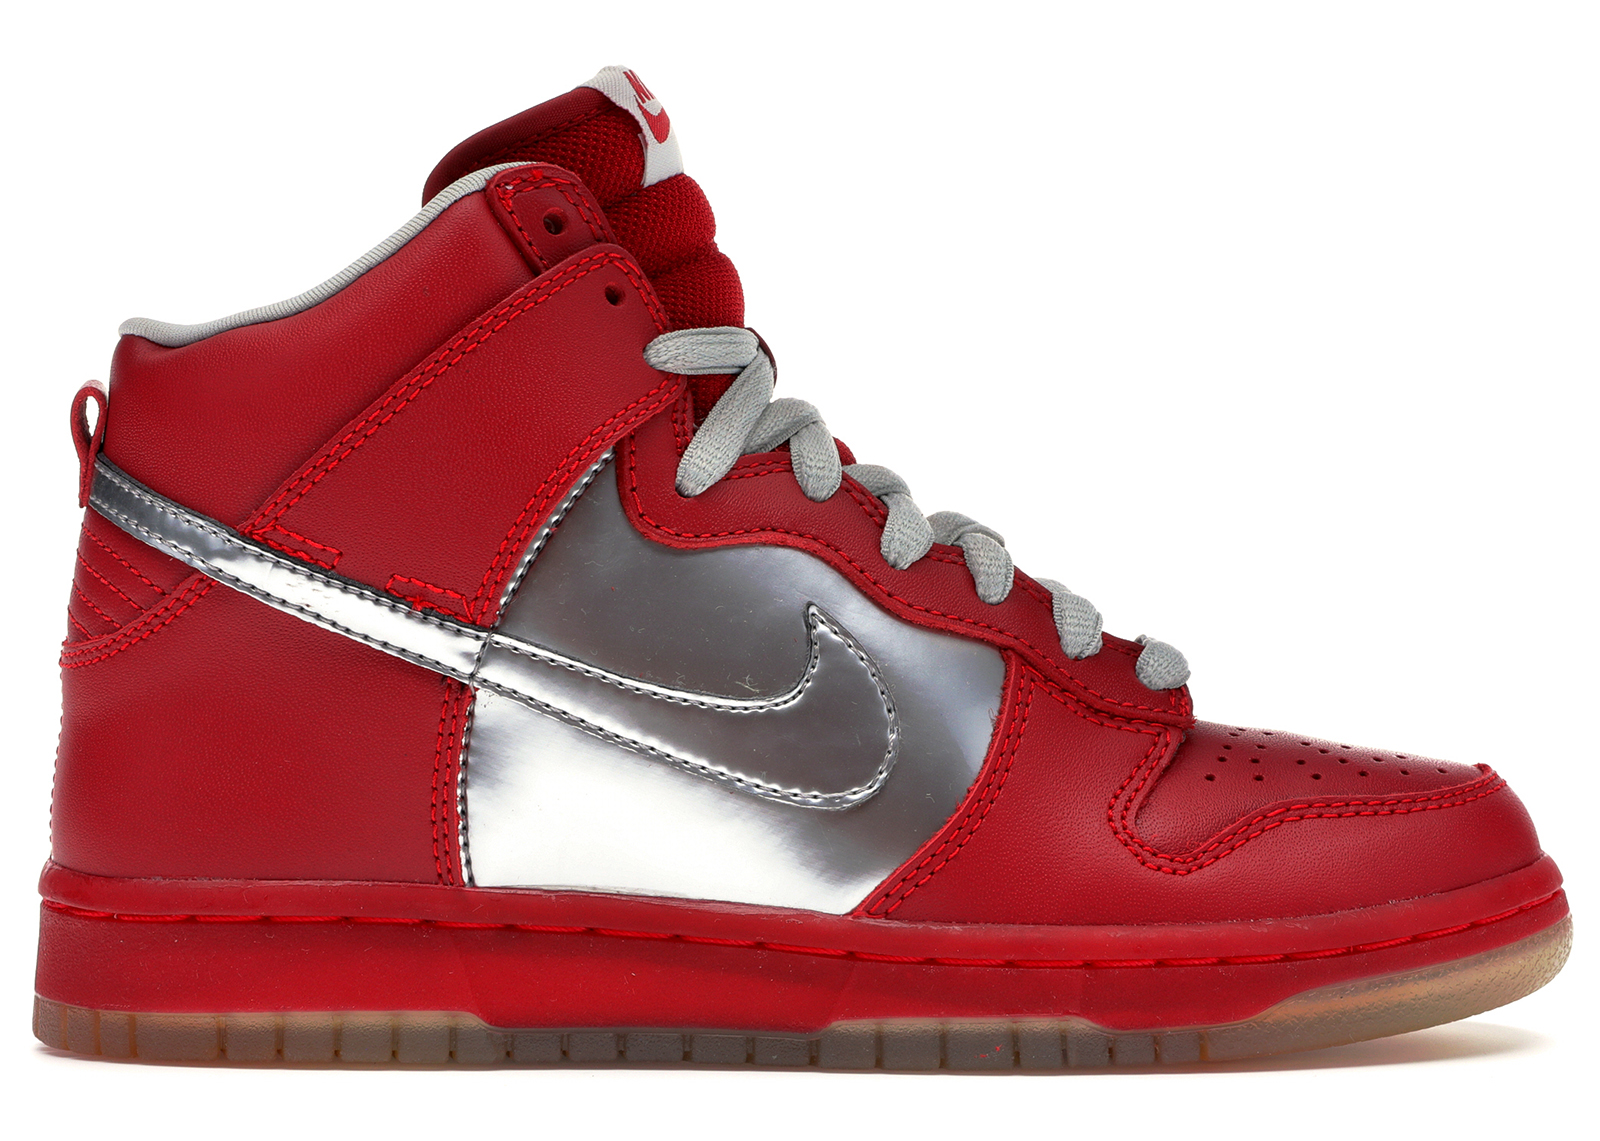 1ba0c91326 czech nike dunk high premium sb mork mindy dunks chrome chrome varsity  cb2cf 219f9  clearance nike dunk sb high mork mindy 44248 58b32